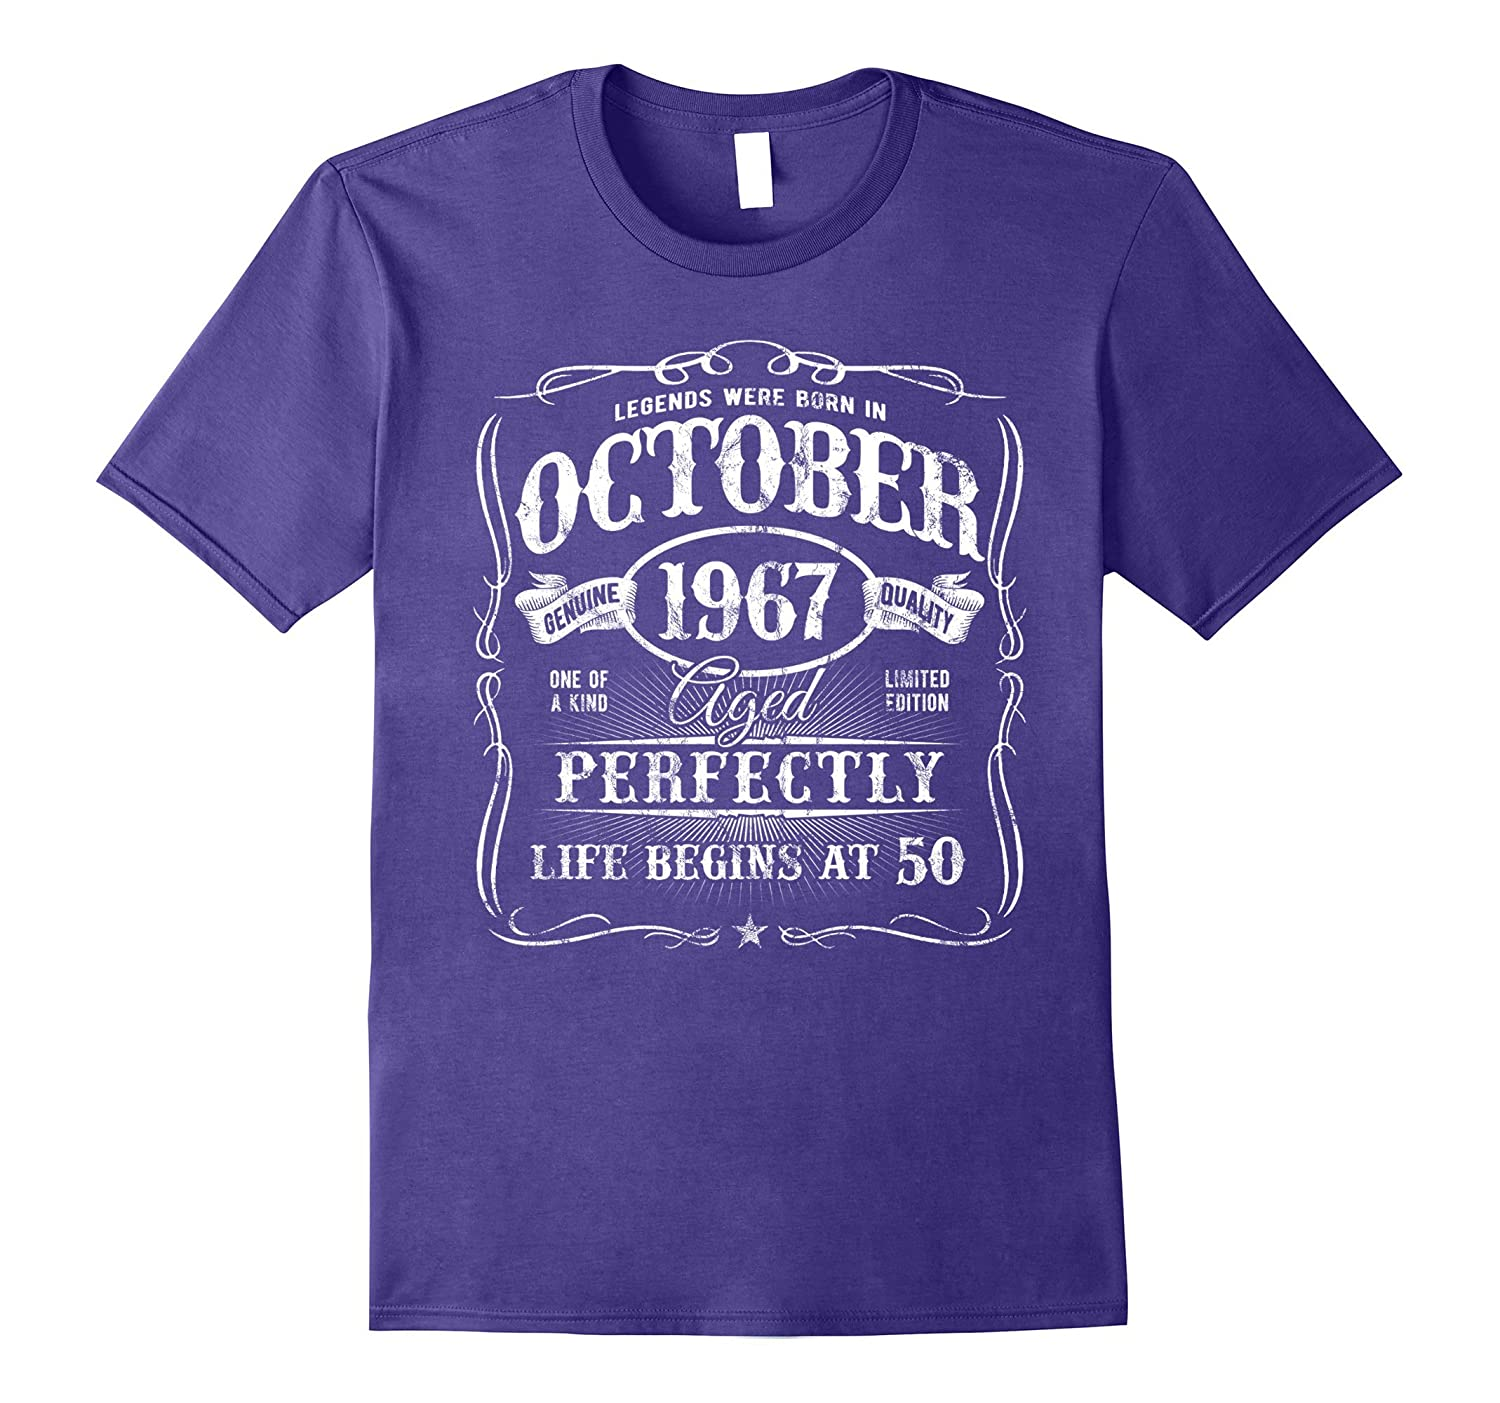 Legends Were Born In October 1967 T-Shirt 50th Birthday Gift-T-Shirt